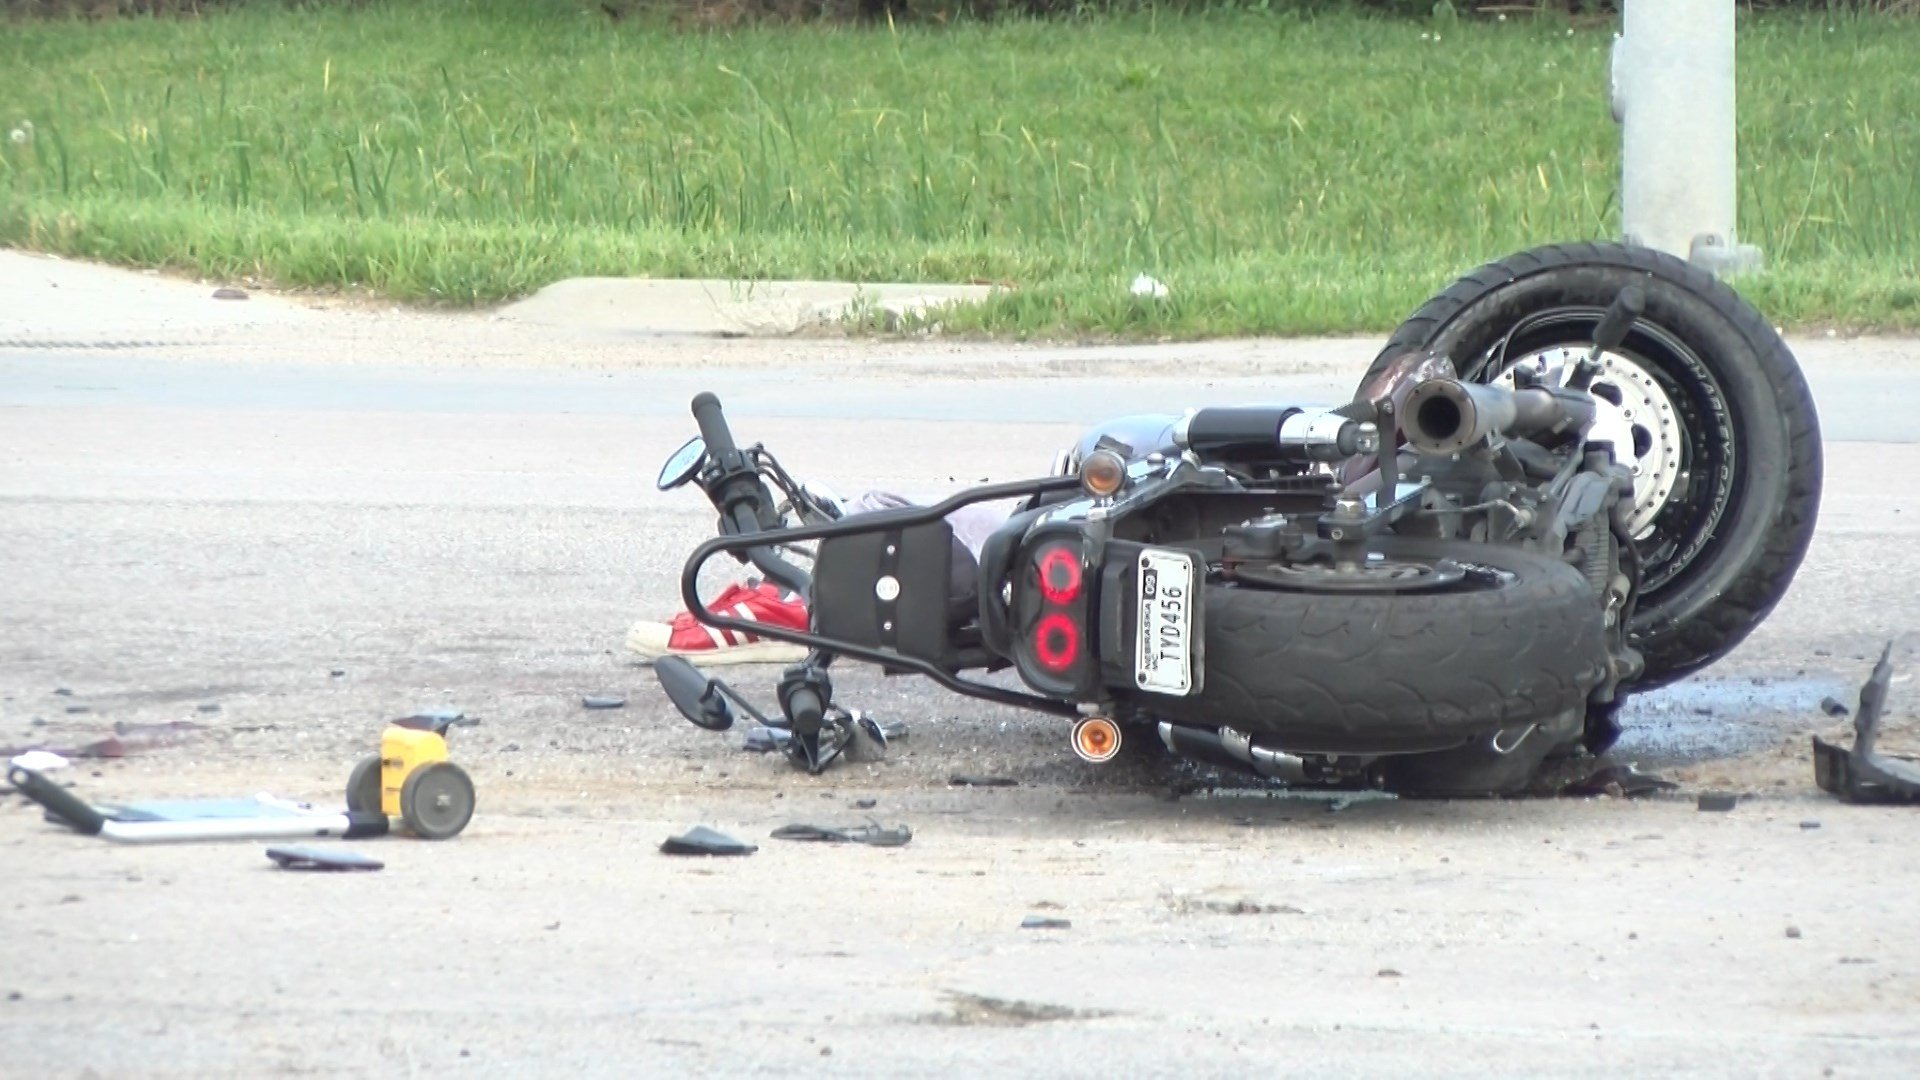 Motorcycle crash in Lincoln leaves man in critical condition - KLKN